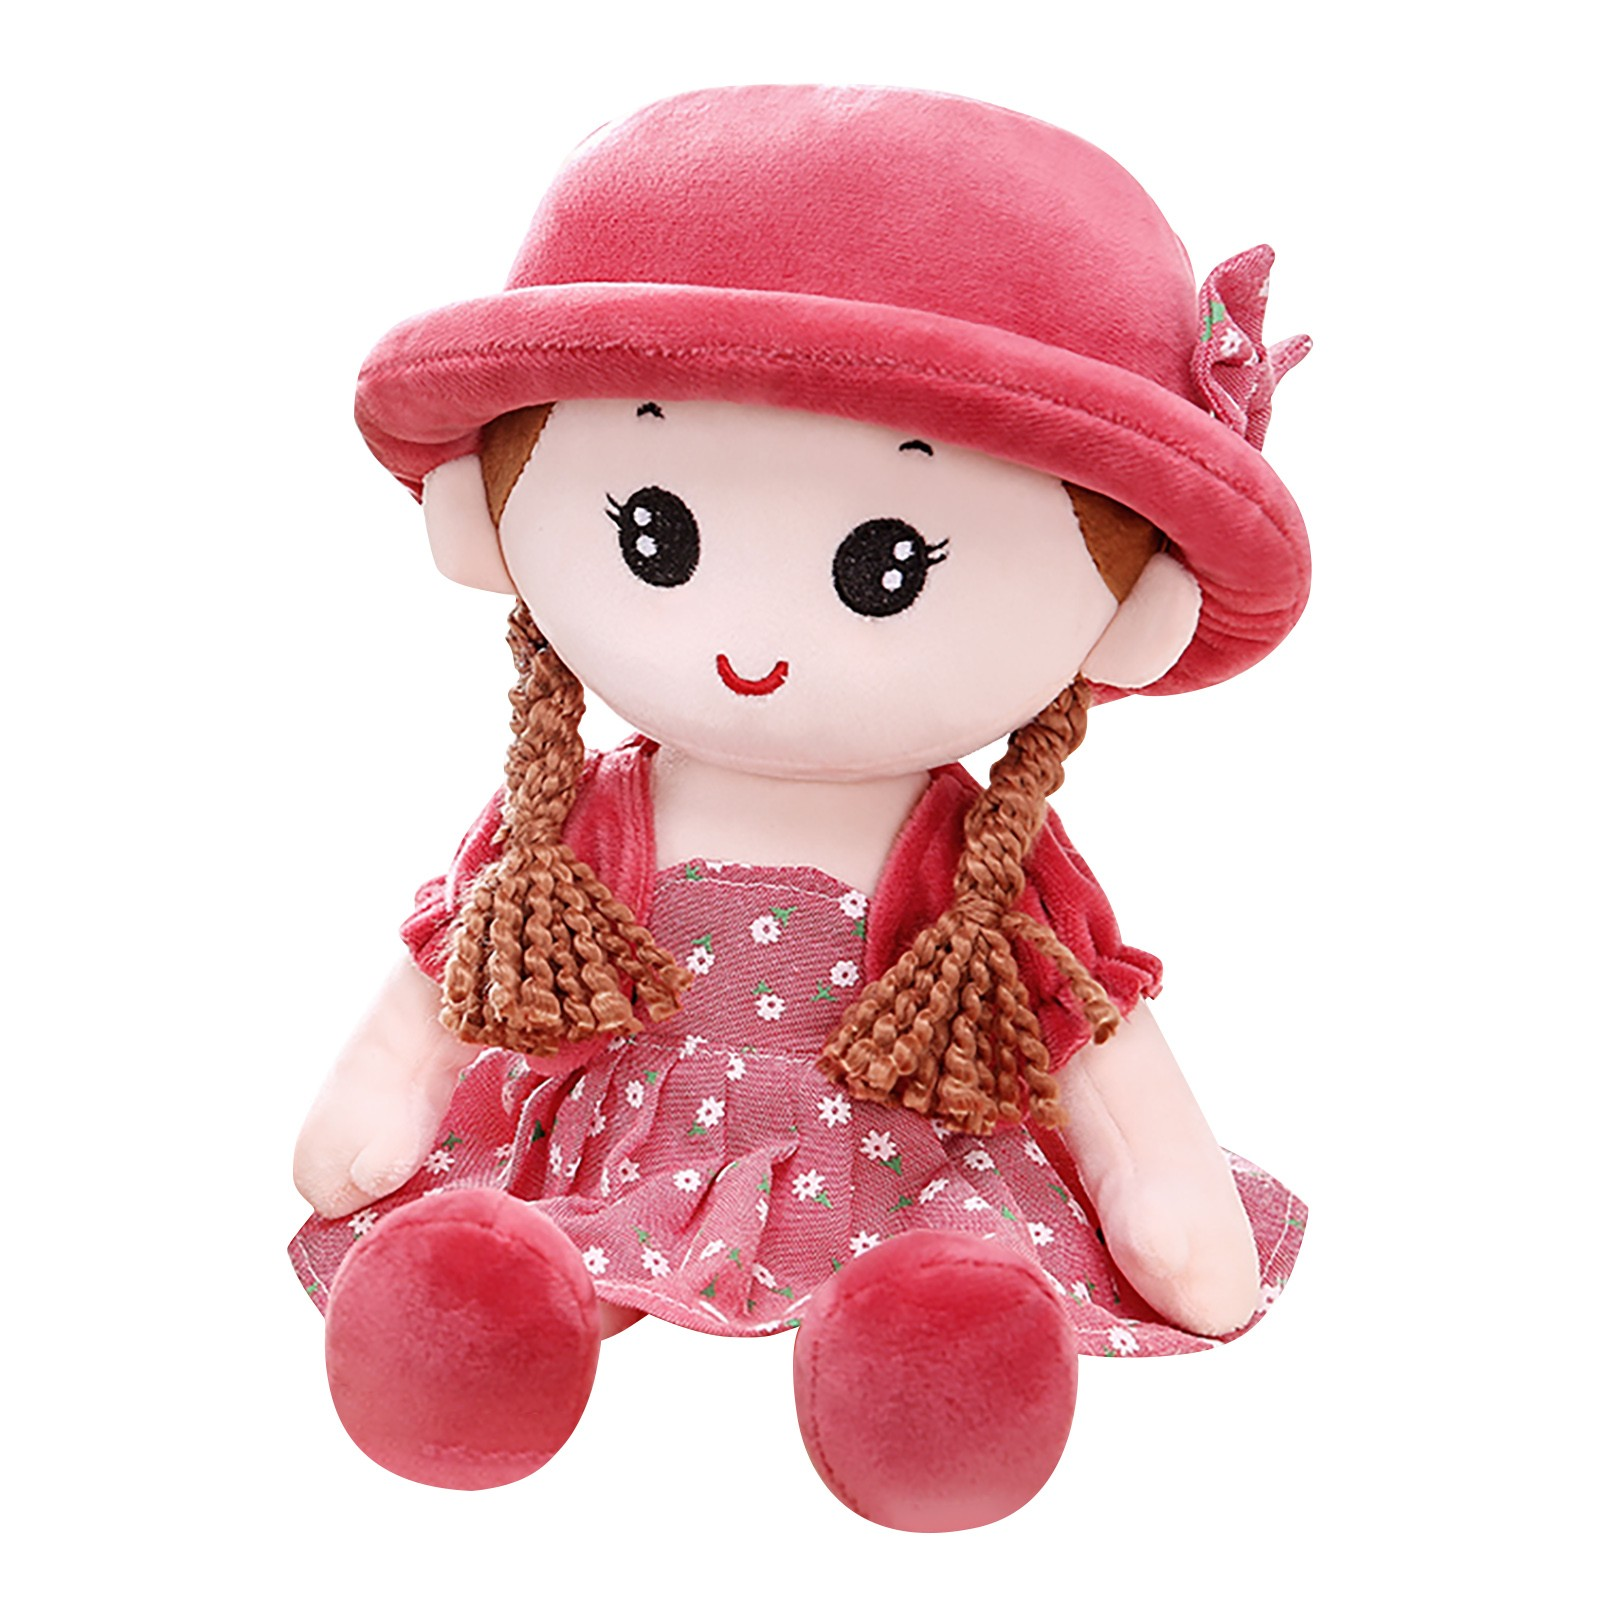 New Kids Plush Toys Cute Baby Girls Ragdoll With Hat Stuffed Doll Home Decoration Ornaments Holiday Gifts Educational Toys